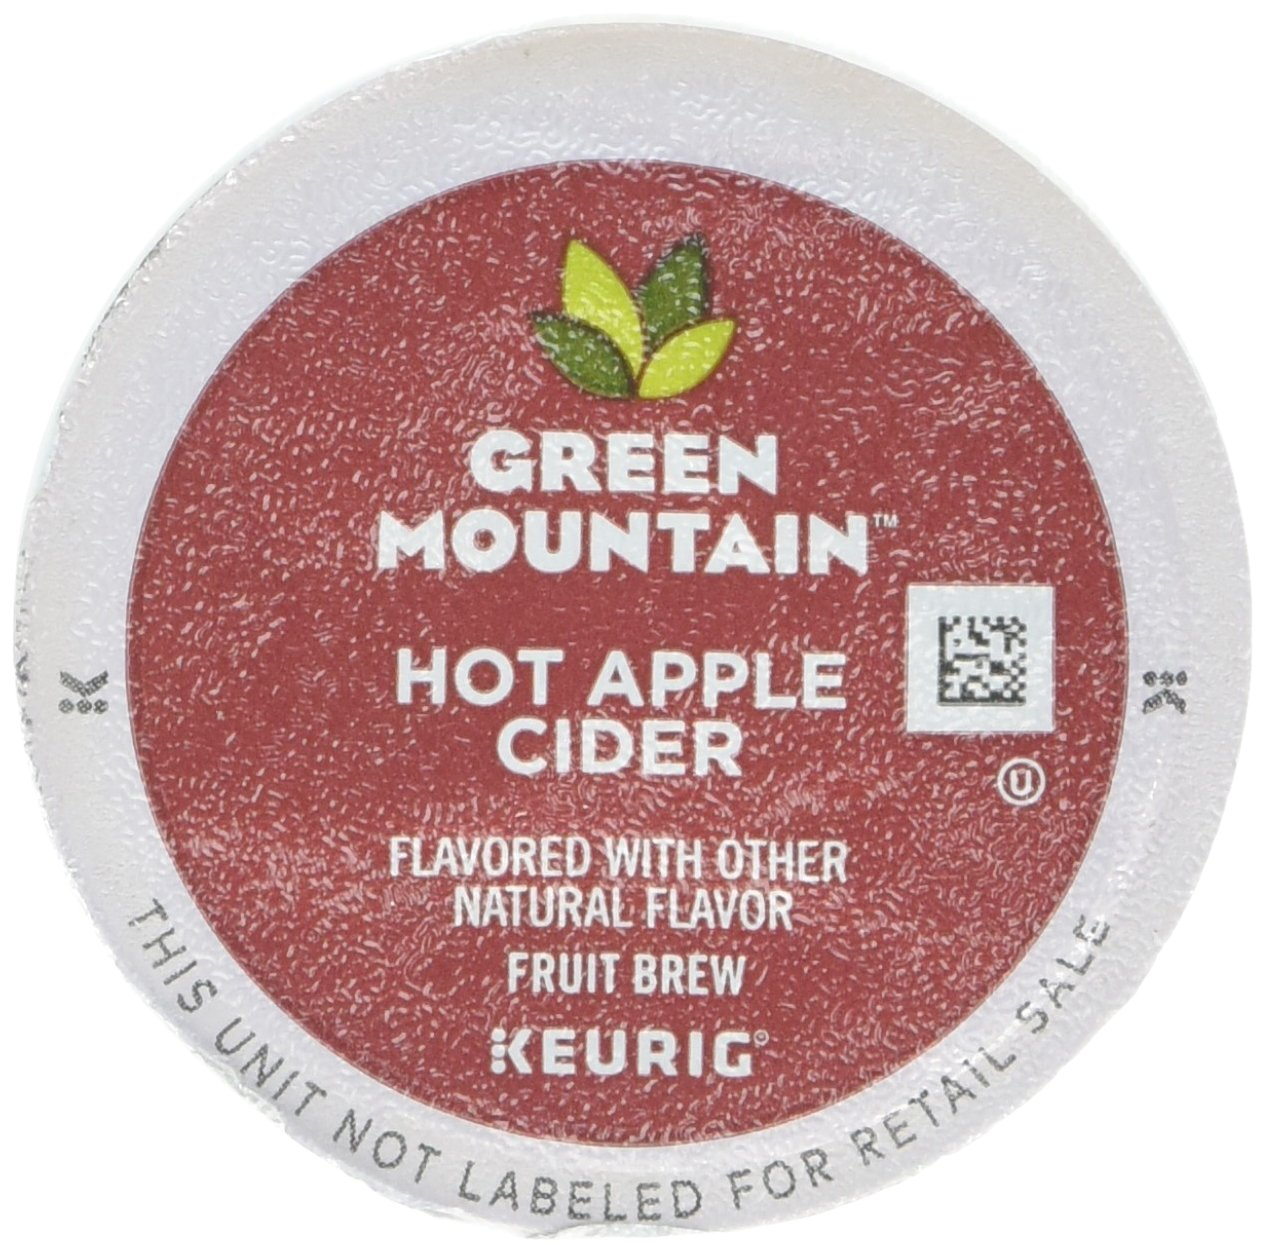 Green Mountain Nautrals Hot Apple Cider, Single-Serve Keurig K-Cup Pods, 96 Count